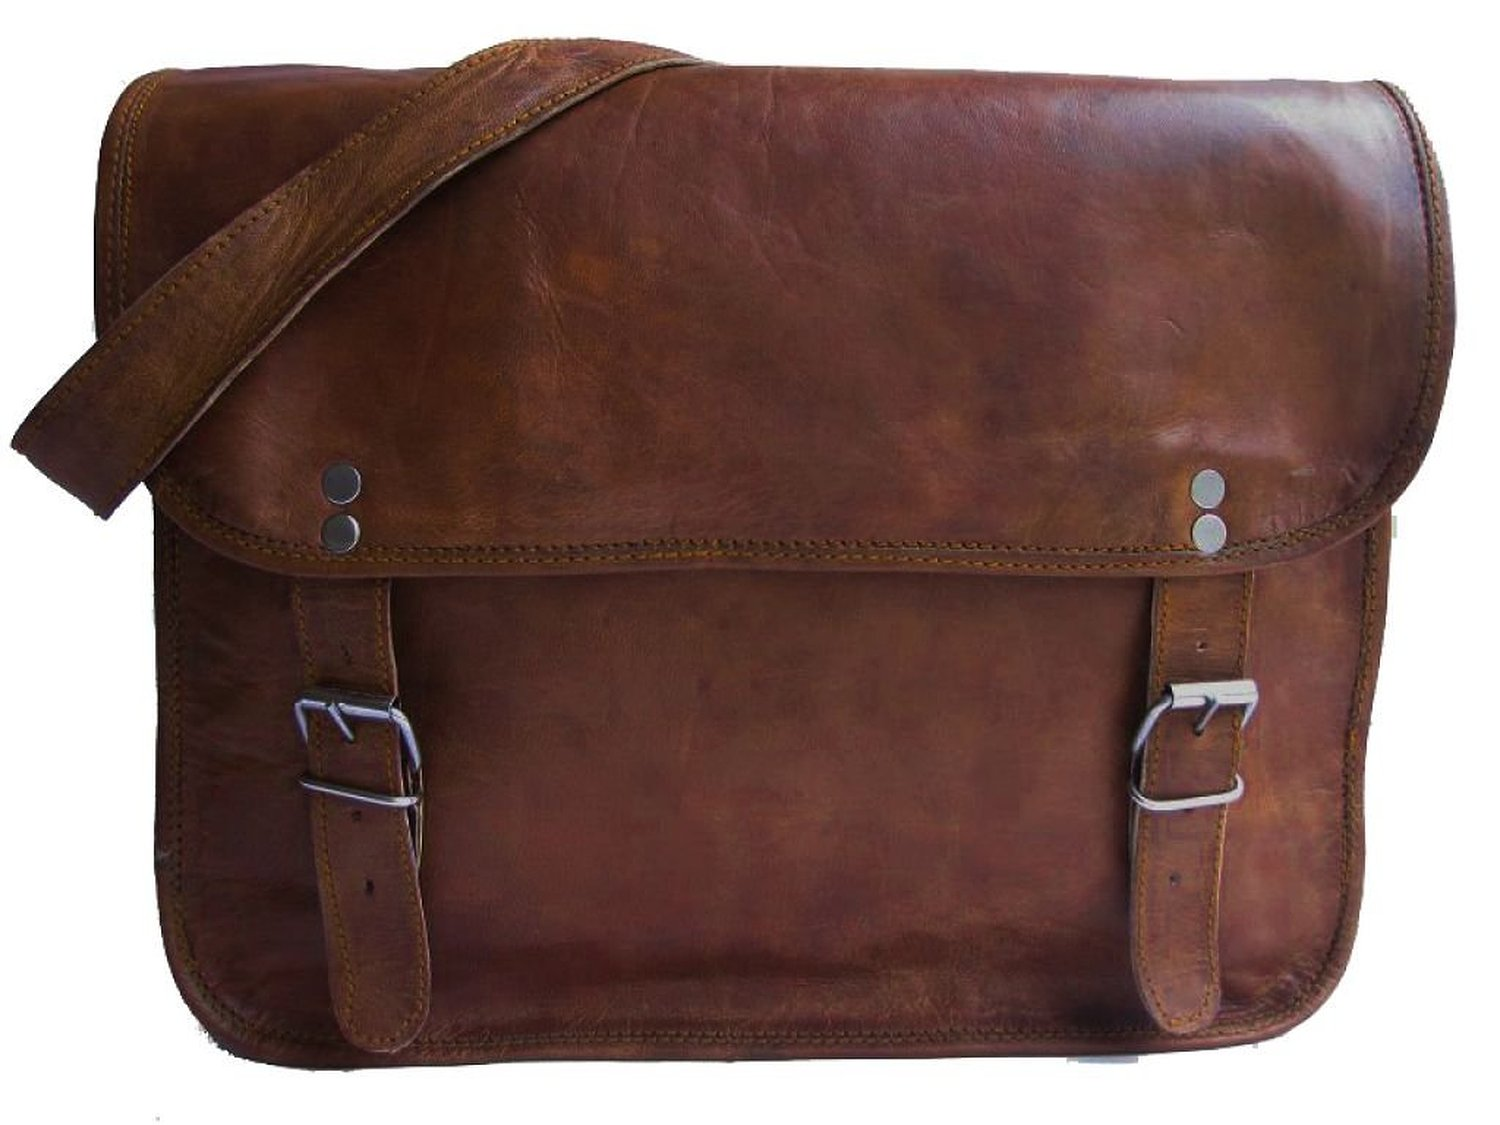 Gusti Leather Genuine Satchel Messenger Shoulder Bag Handbag Vintage College Leisure Bag Vintage Unisex Rich Brown M2: Handbags: Amazon.com